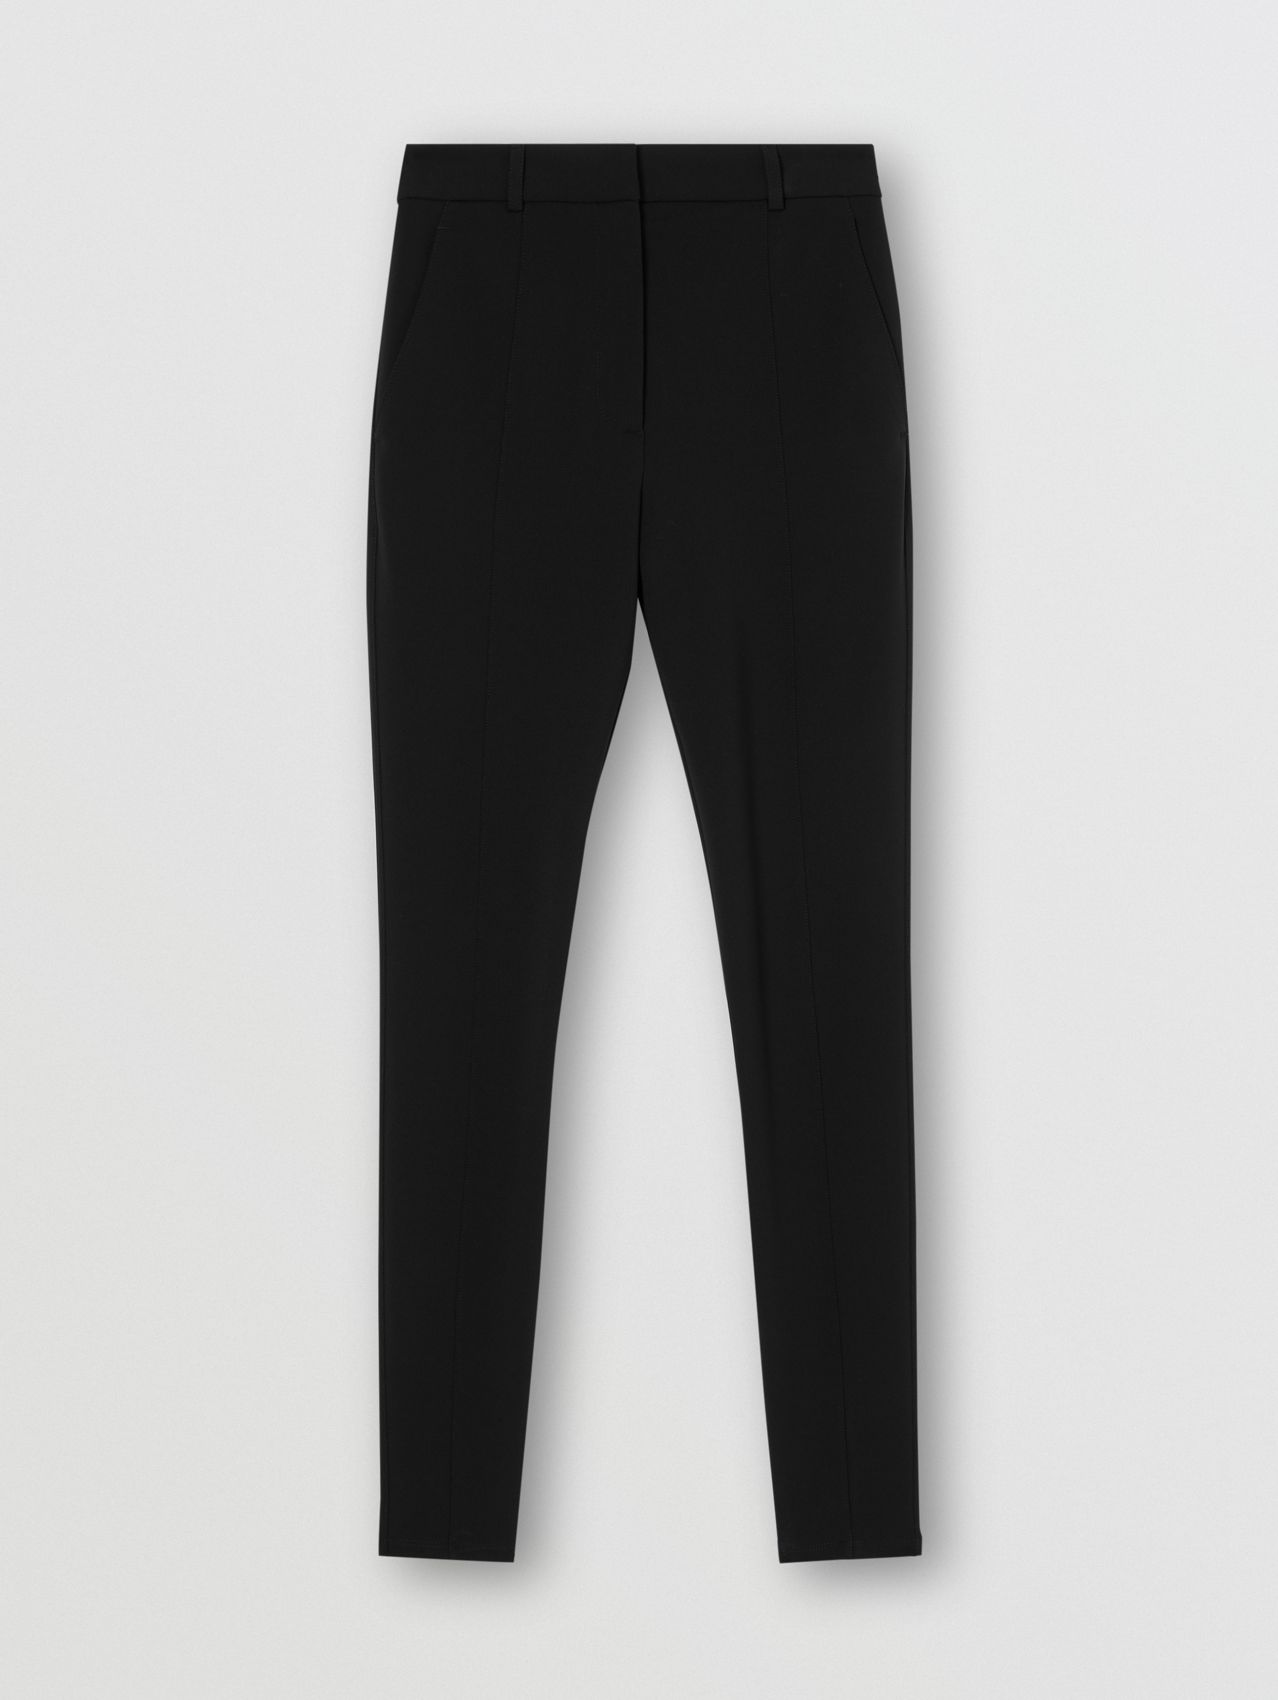 Stretch Jersey Jodhpurs in Black